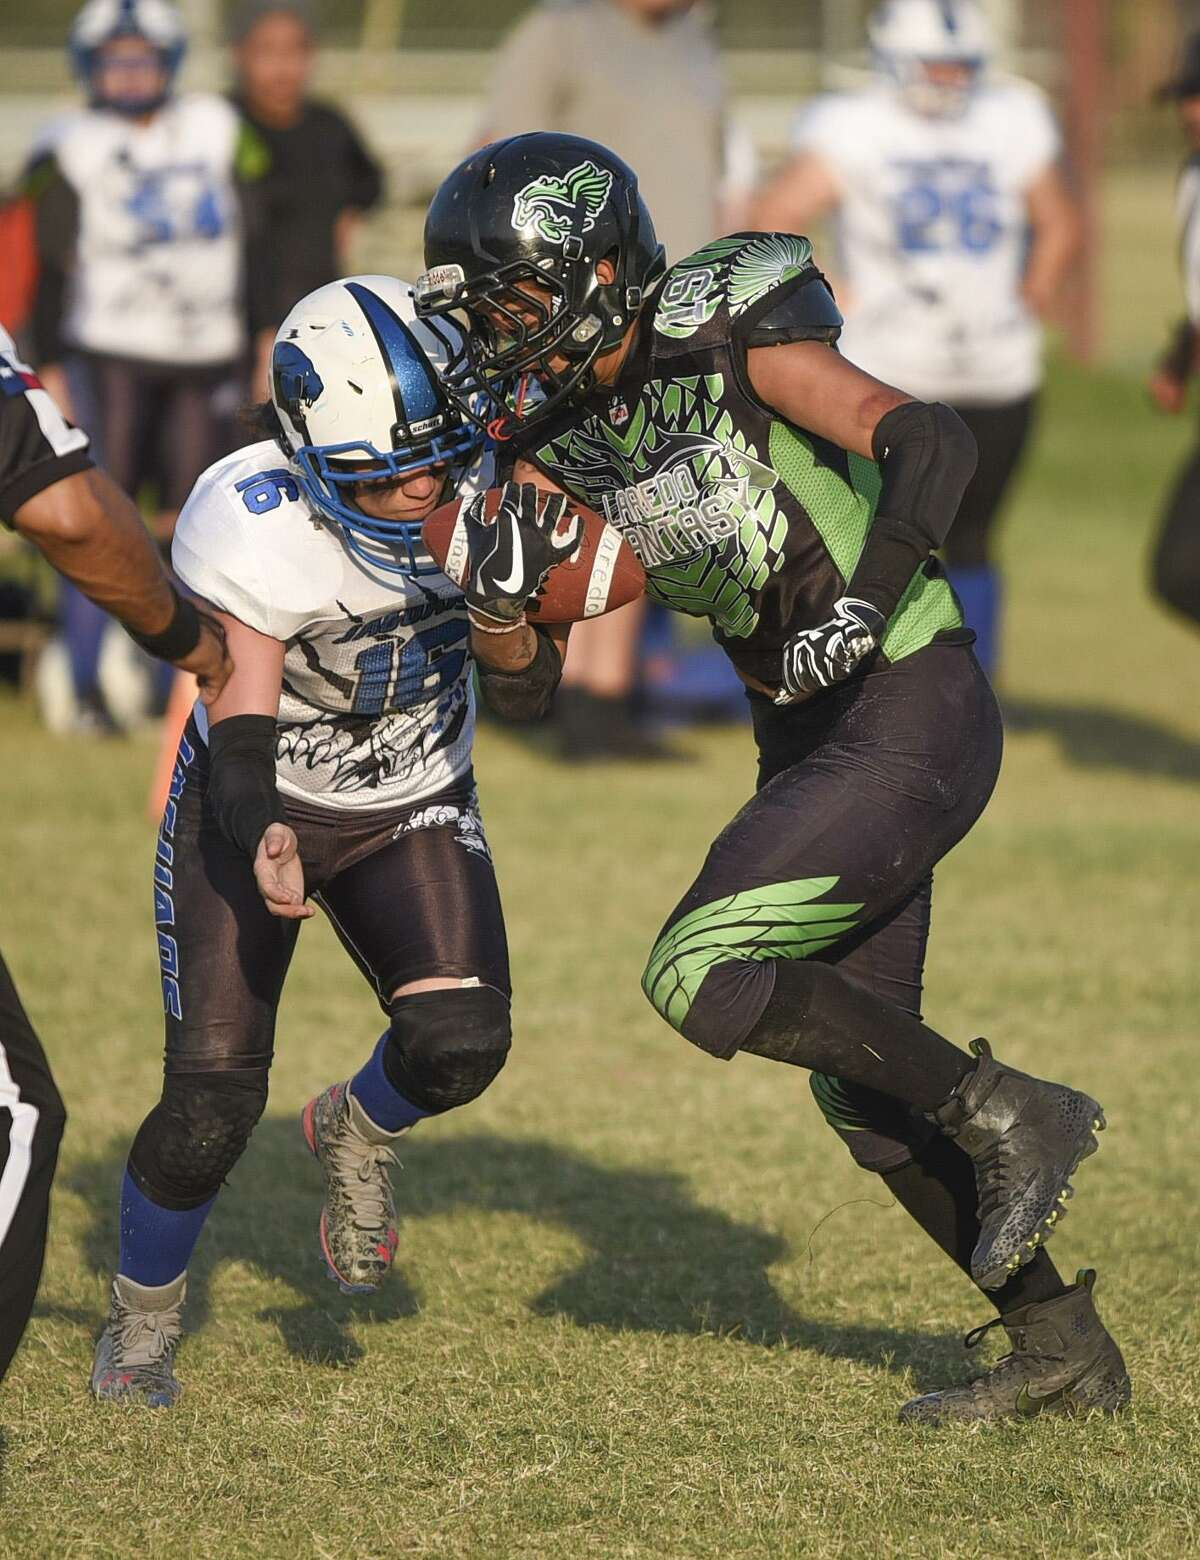 The Laredo Phantasy (1-2) fell for a second straight game with a 45-20 loss to the Weslaco Jaguars (3-0) Saturday night at Slaughter Park.